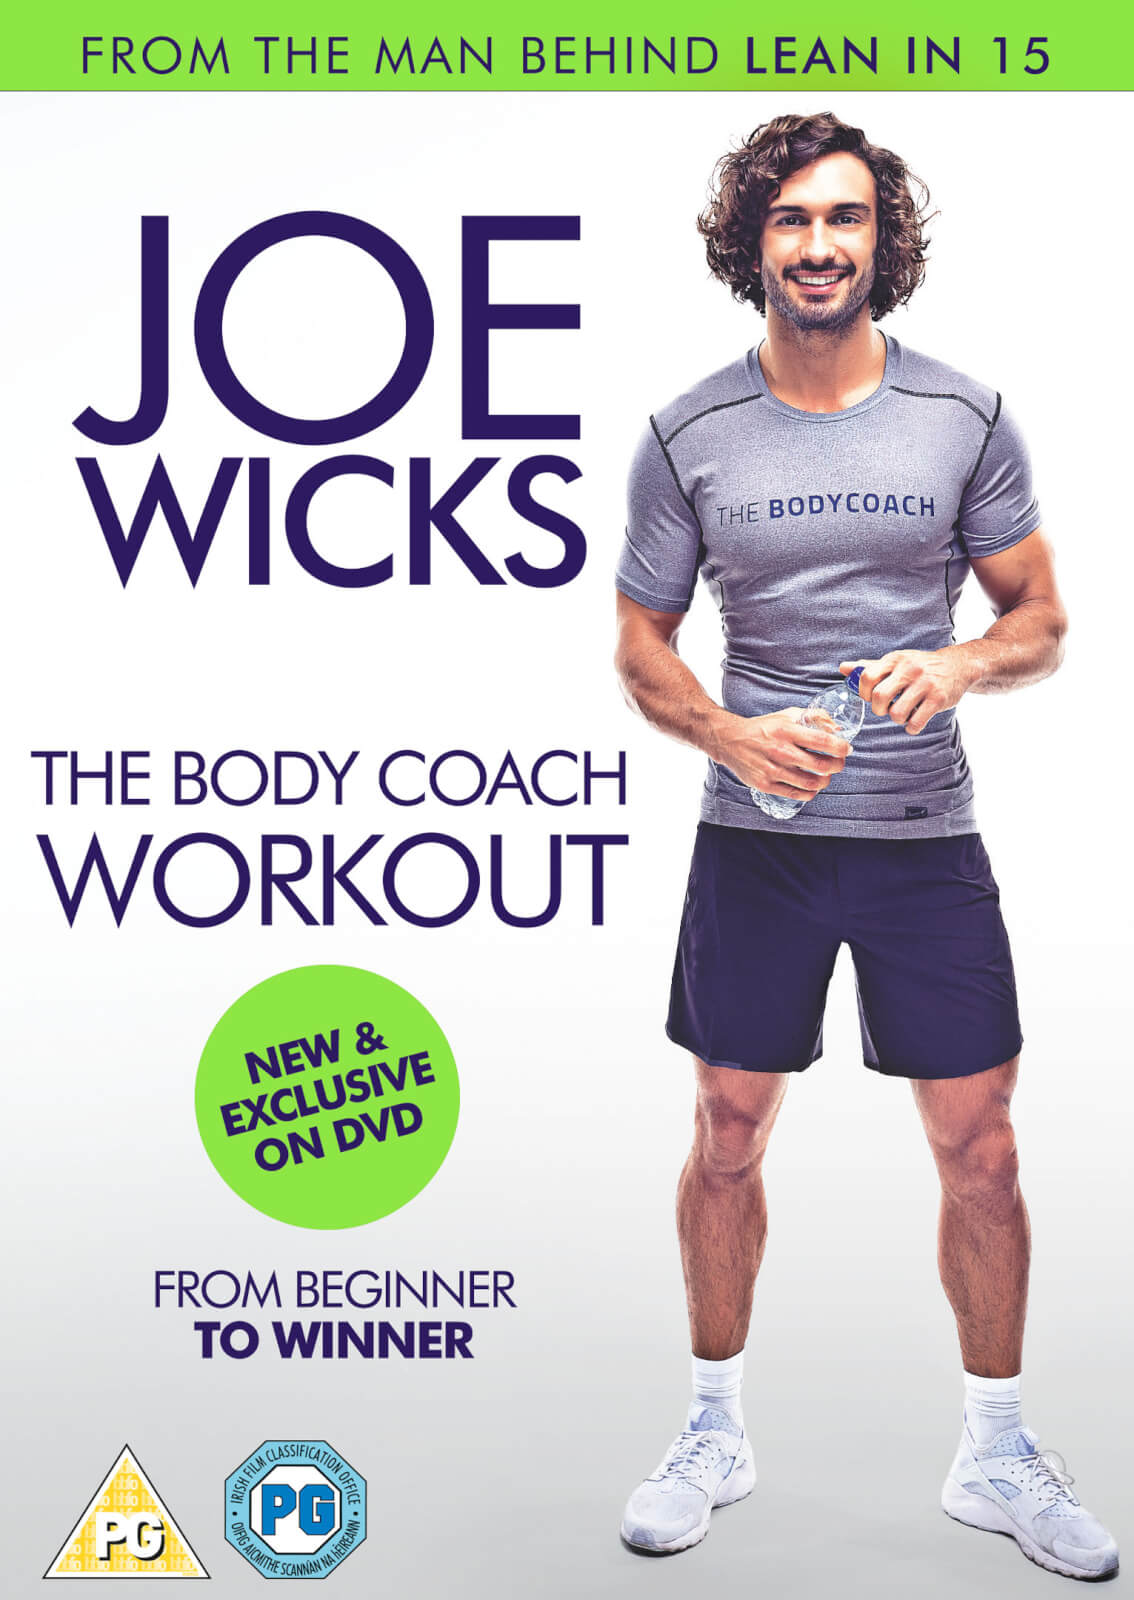 Joe Wicks: Lean in 15